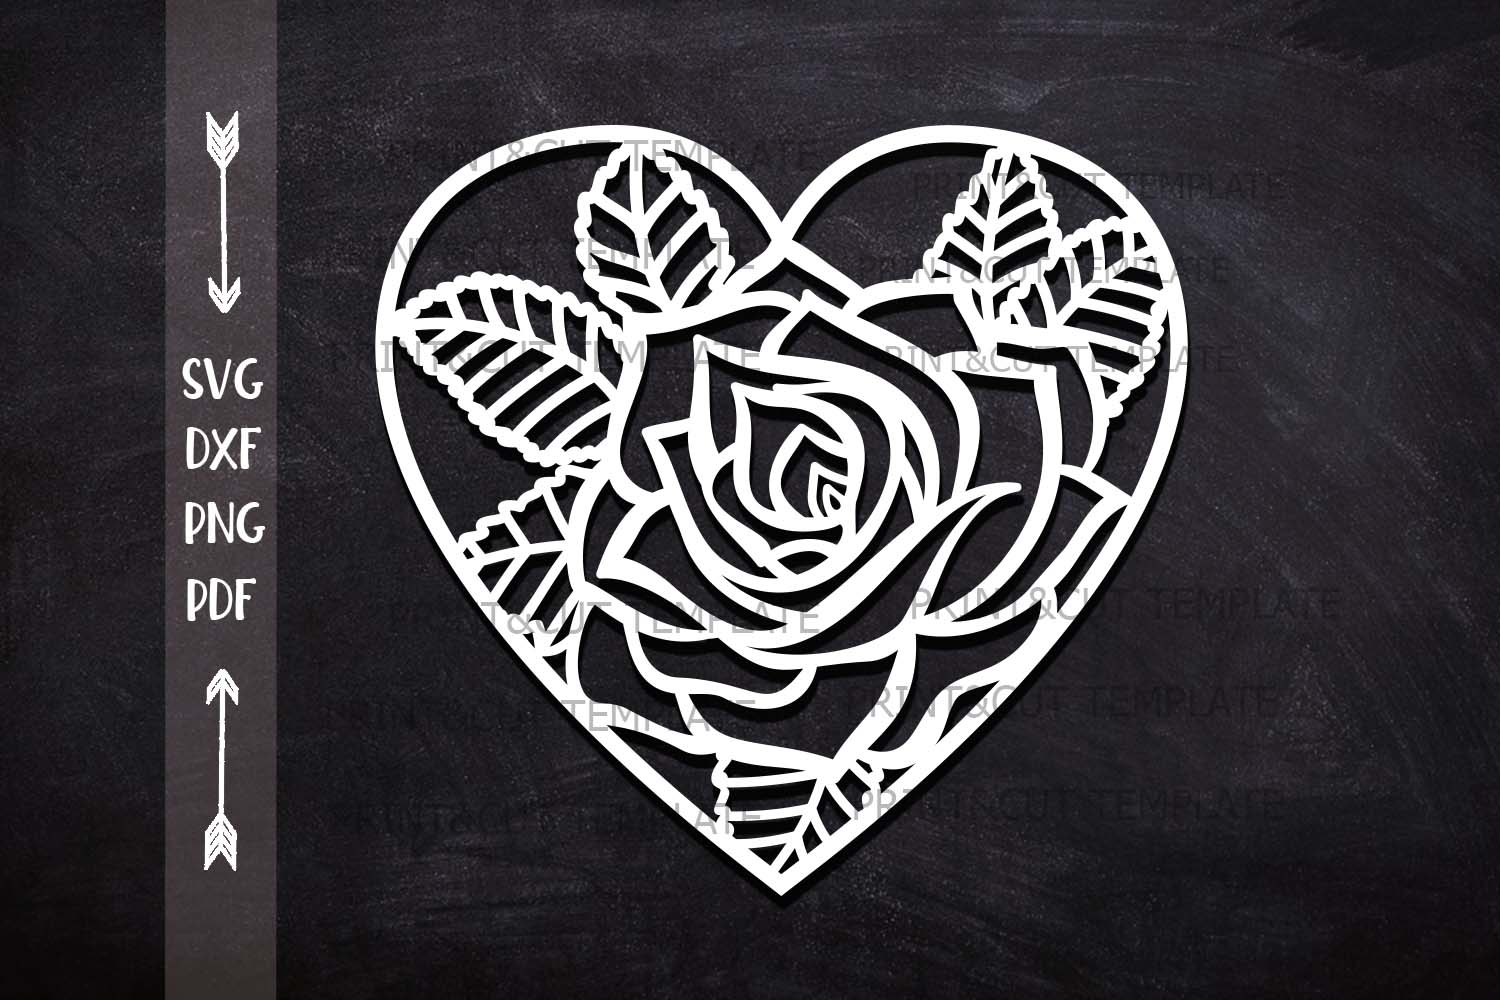 Download Free Rose Heart Graphic By Cornelia Creative Fabrica for Cricut Explore, Silhouette and other cutting machines.